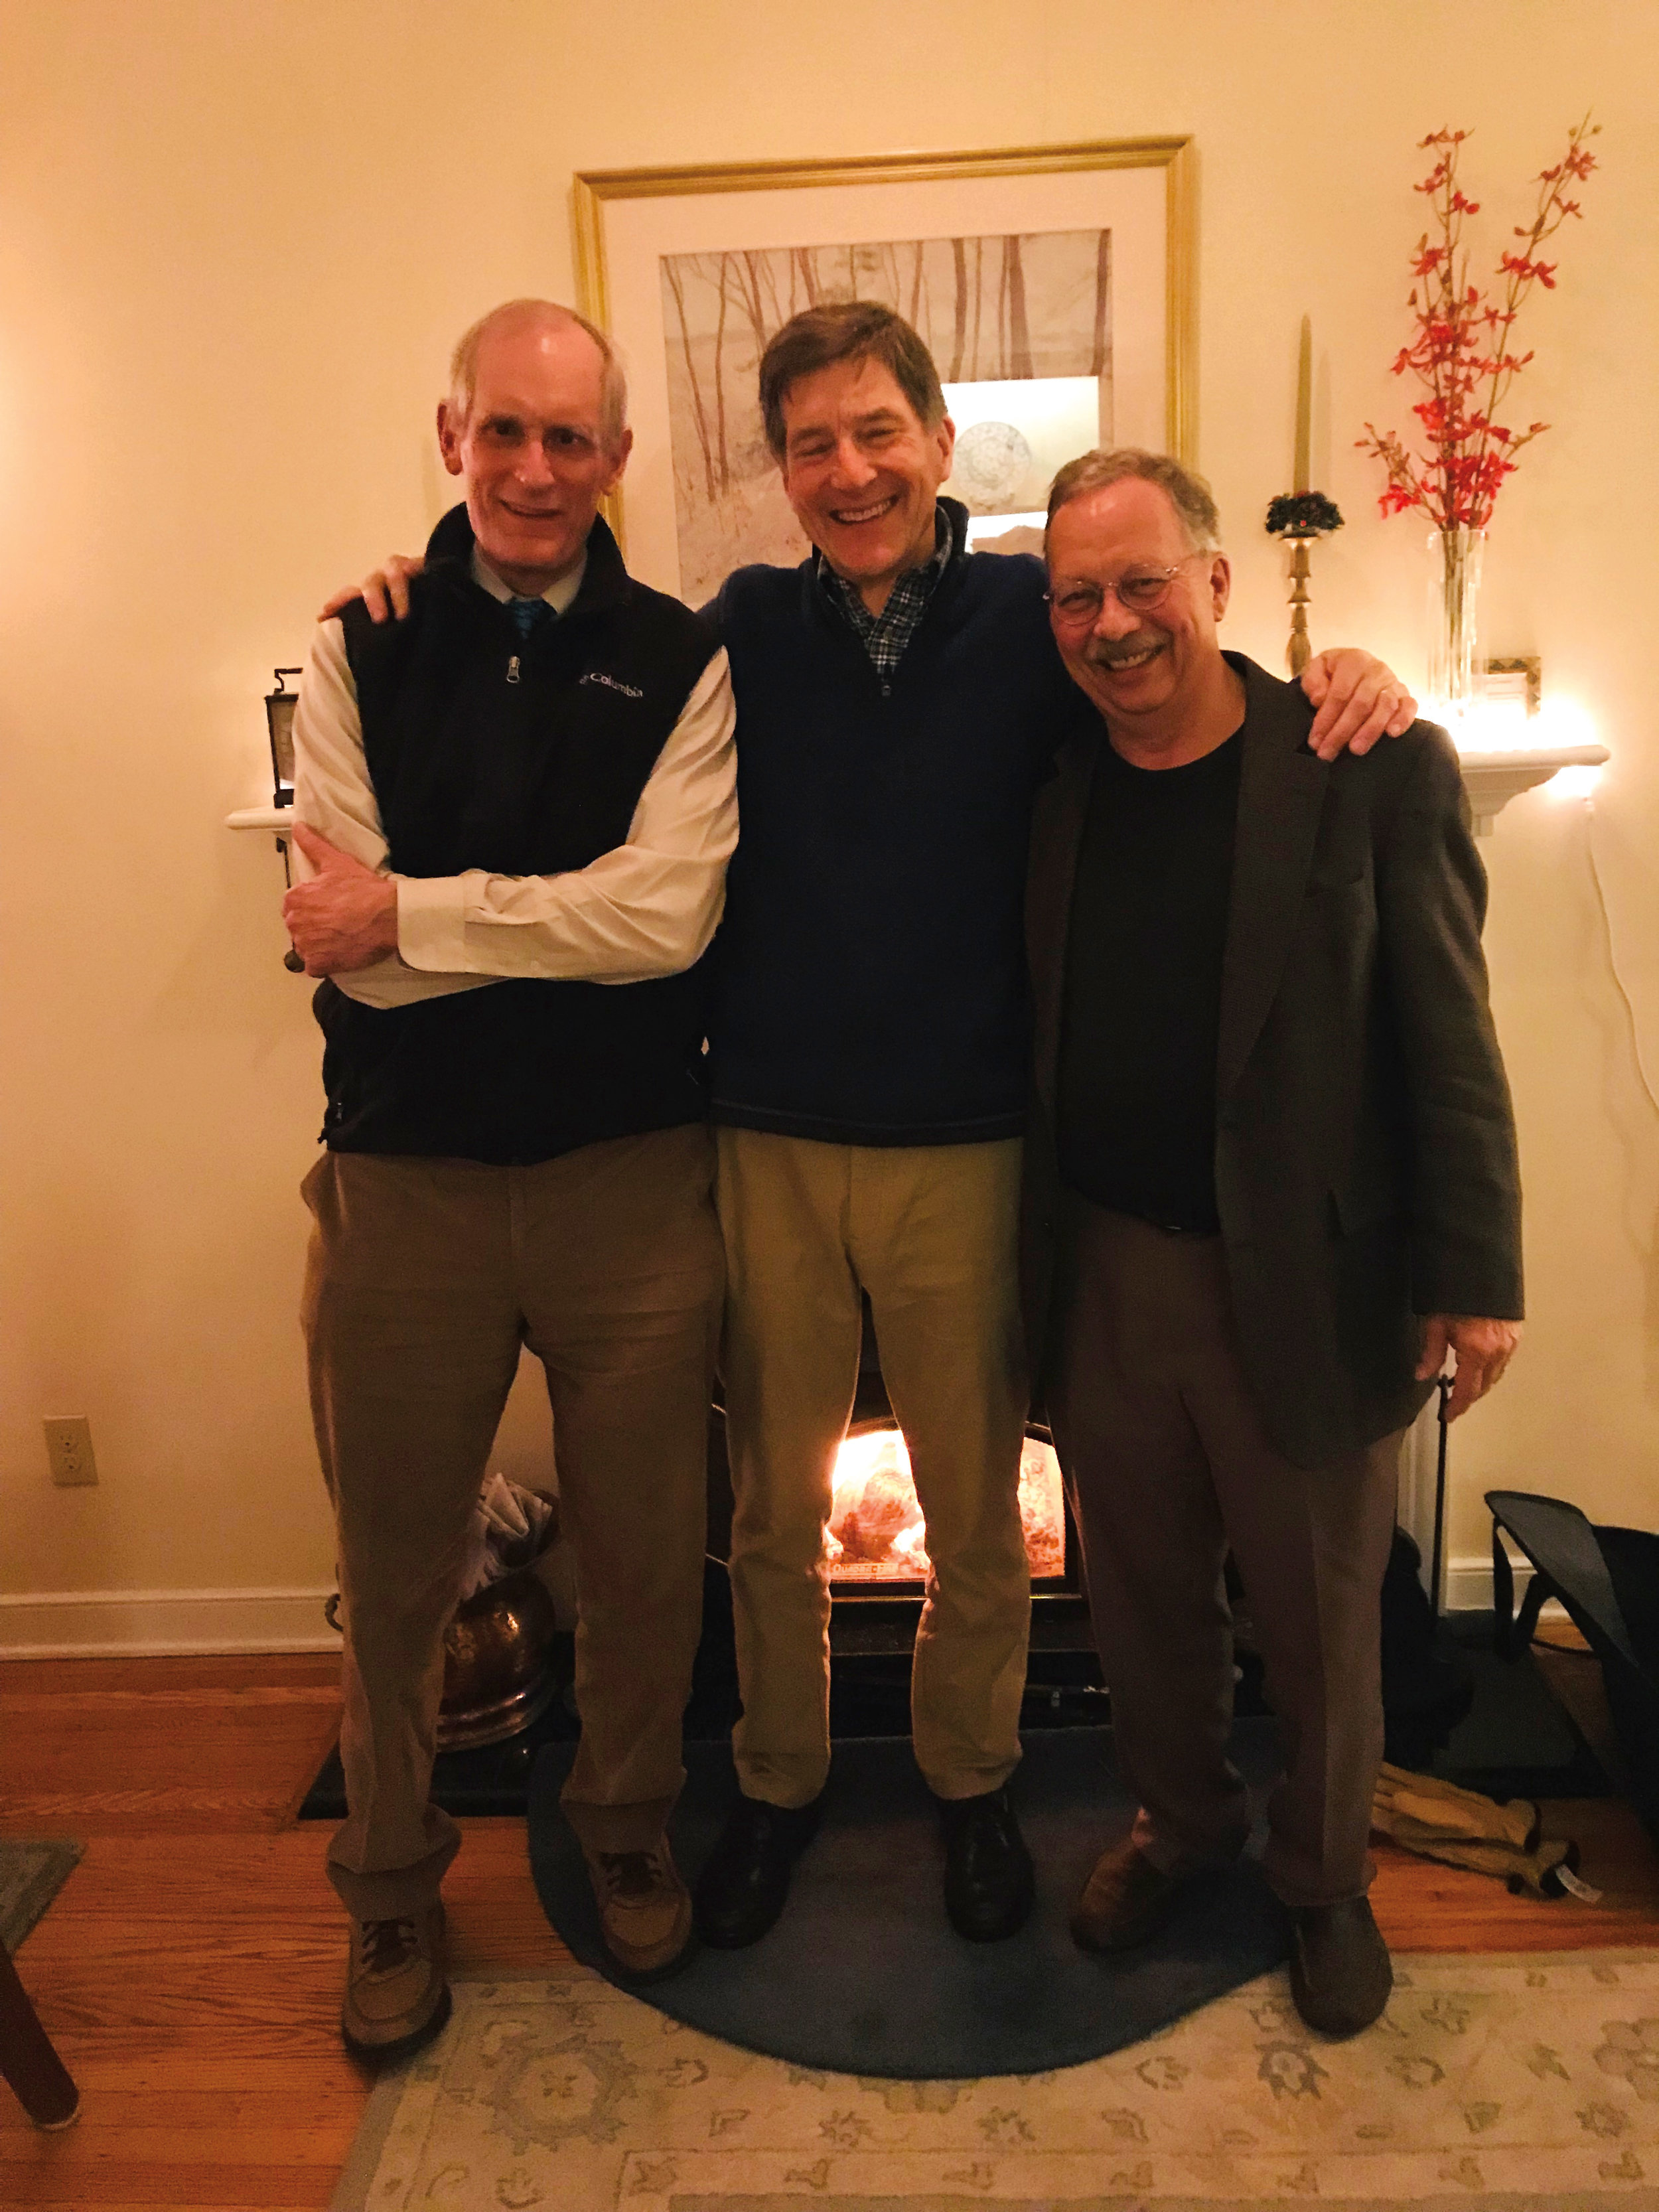 (L. to r.) Andrew Roberts '66, Jeff Clark '66, and Hugh Clark '66 gathered for dinner.